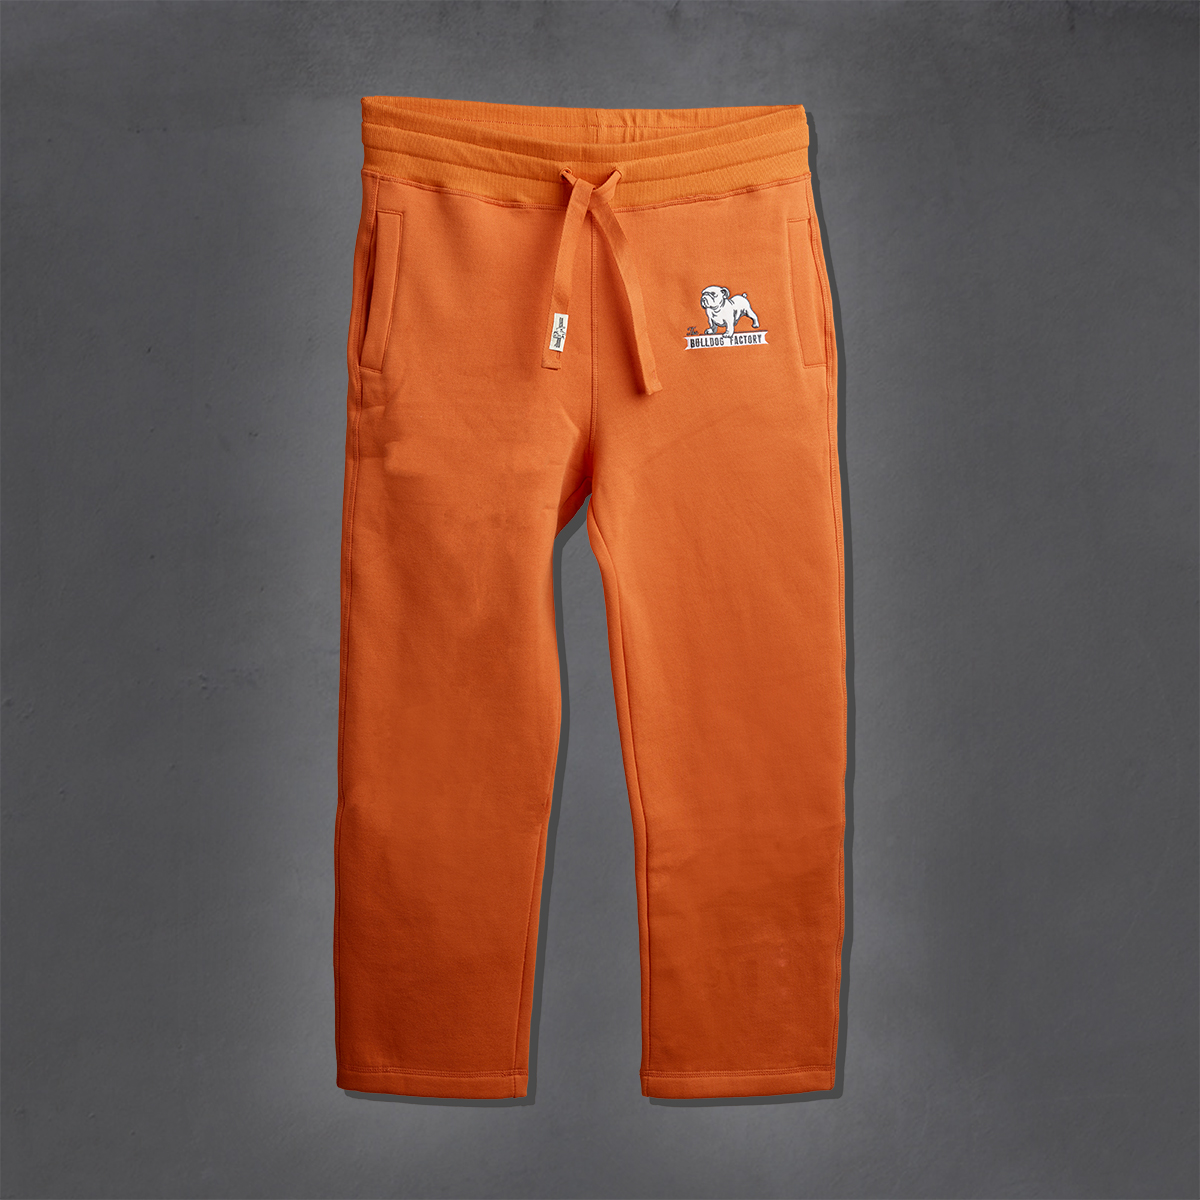 Guys Heritage Sweatpants - Celosia Orange